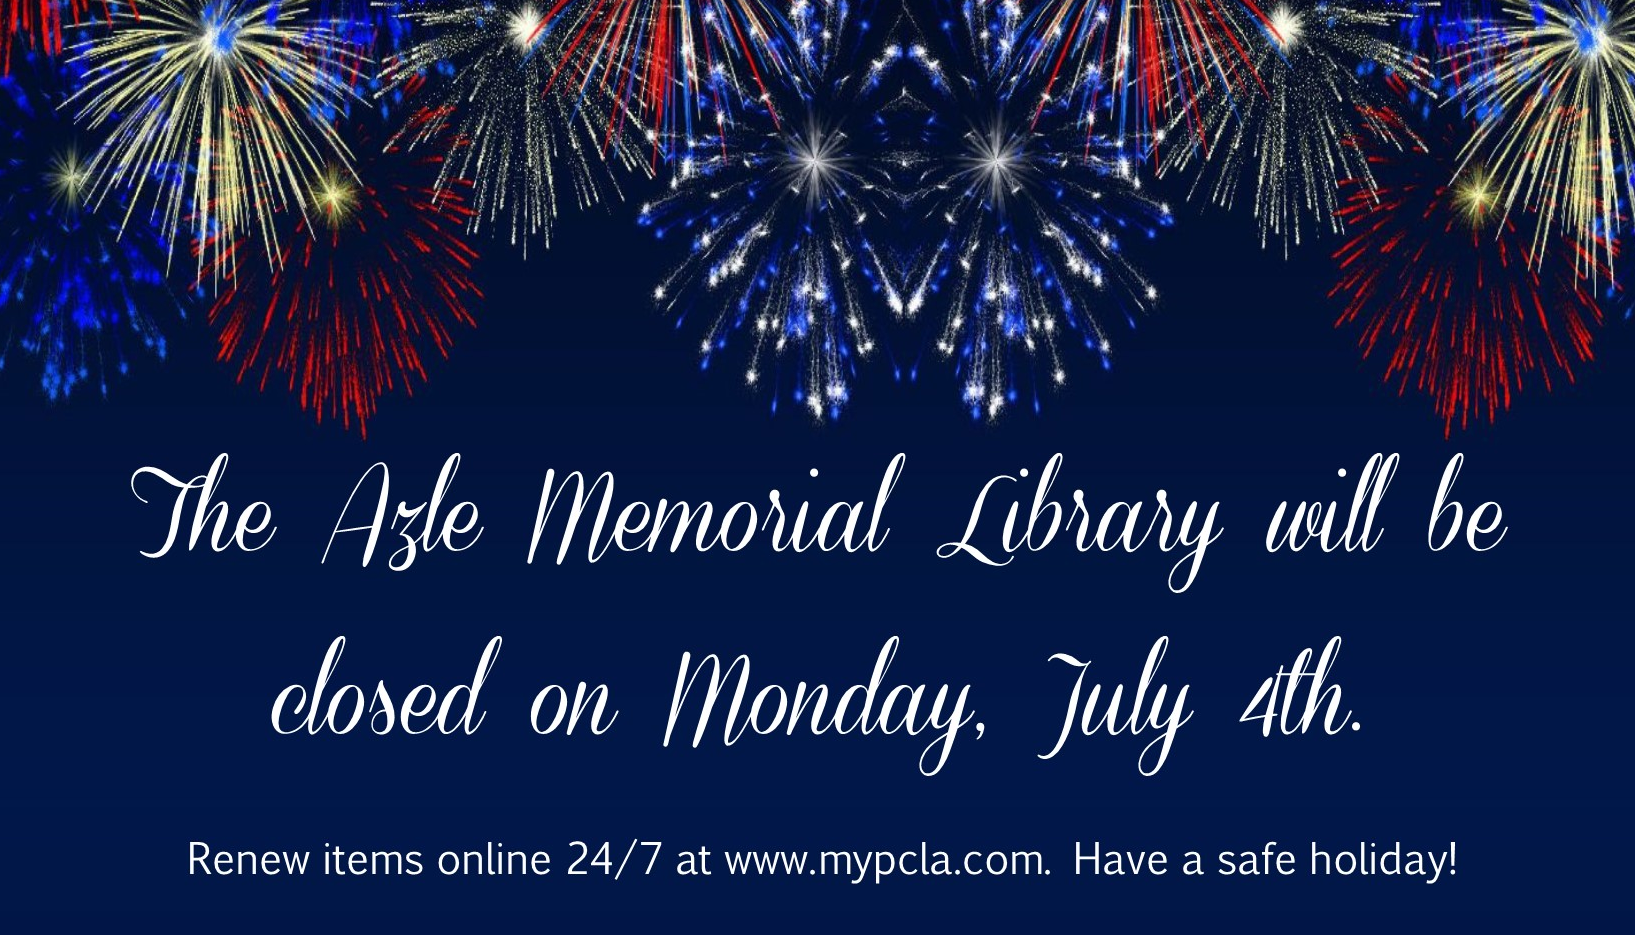 Library closed on July 4th.